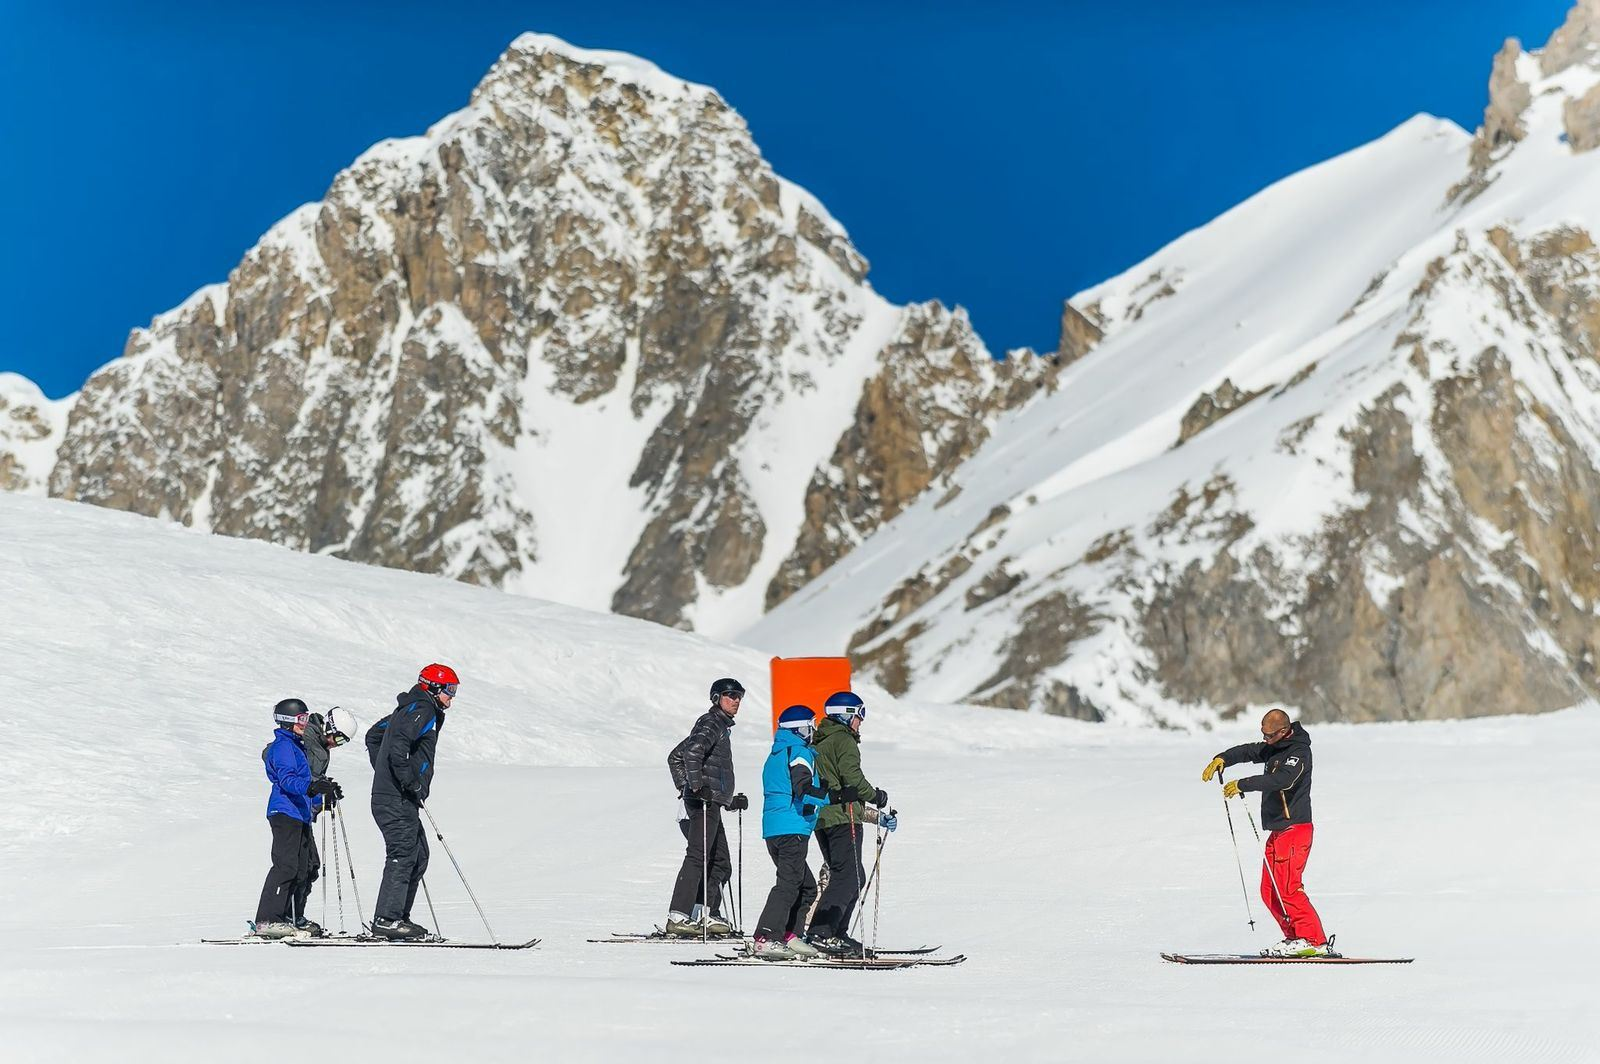 Beginner intensive ski session full day for adults from 13 years old without lunch 5 days - ski school Evolution 2